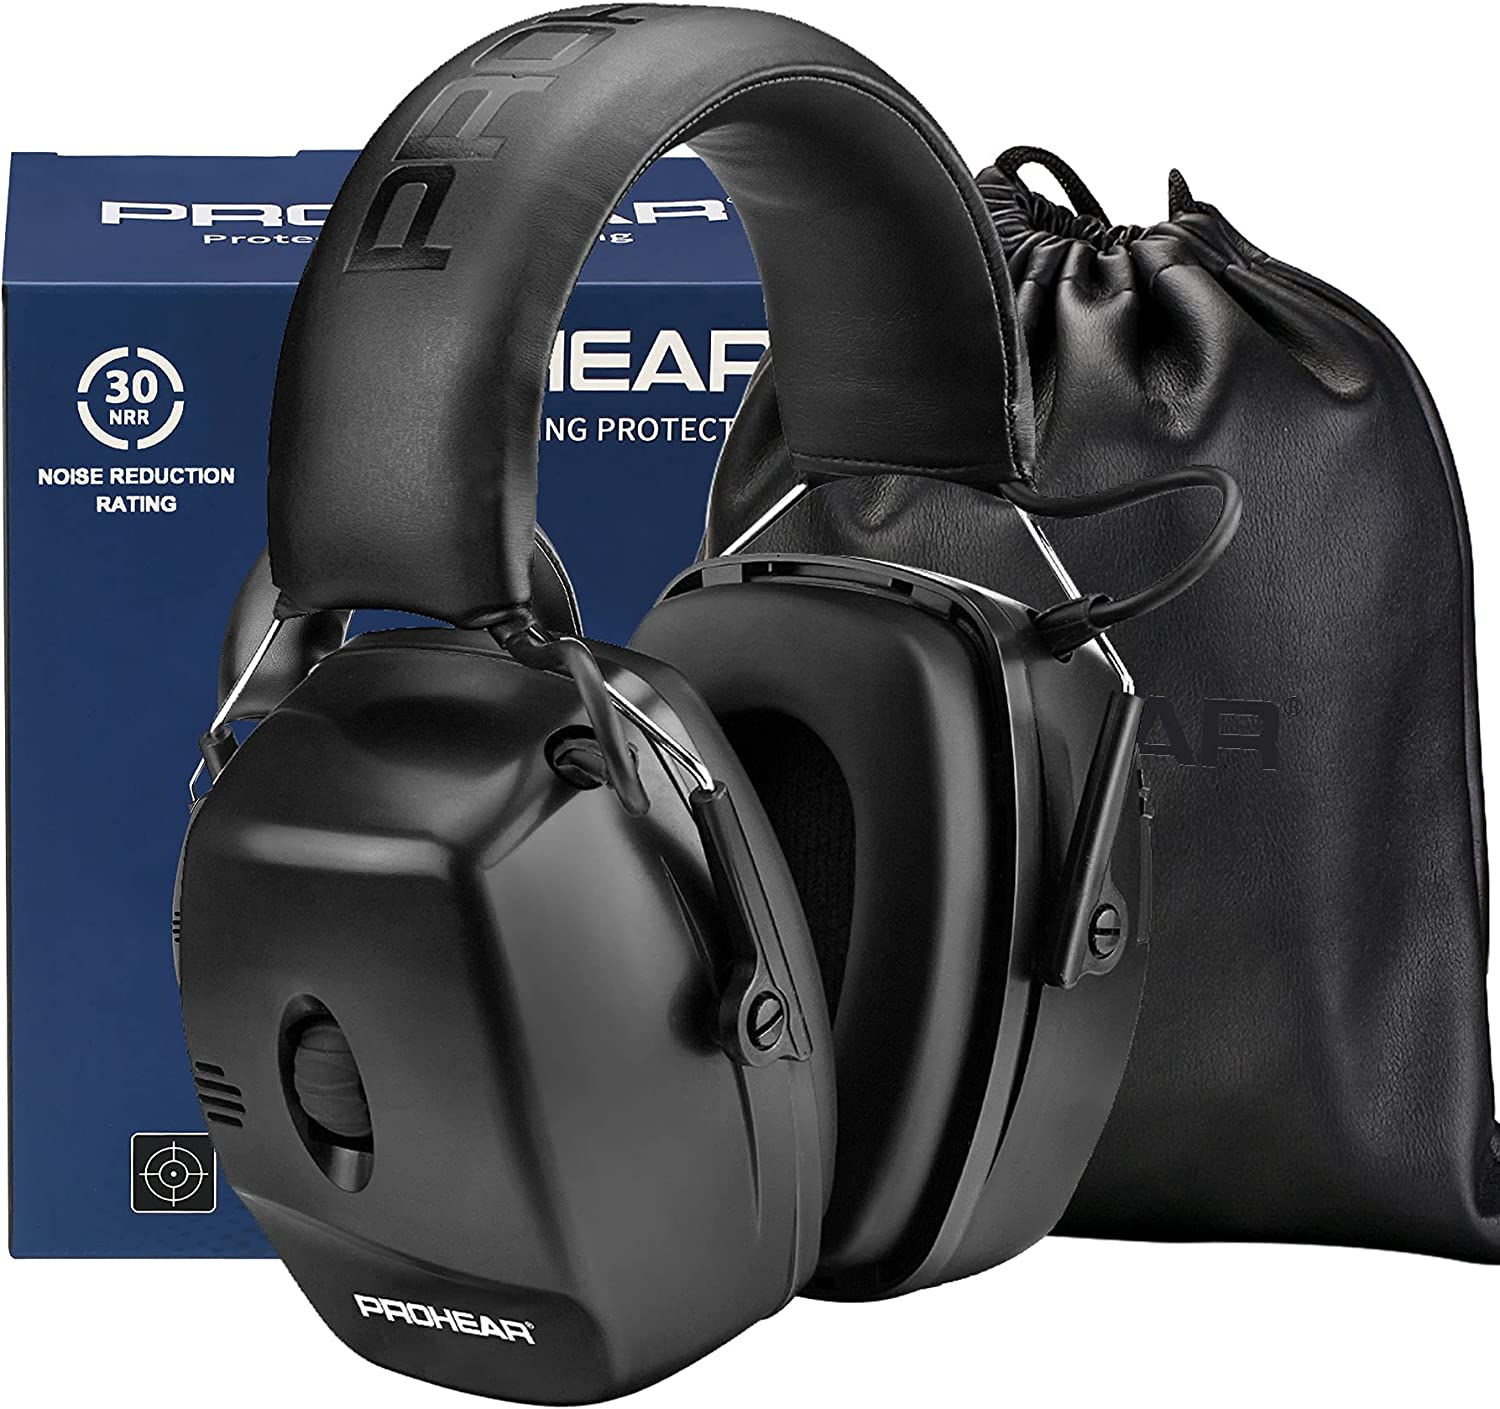 PROHEAR 056 30dB Highest NRR Digital Electronic Shooting Ear Protection